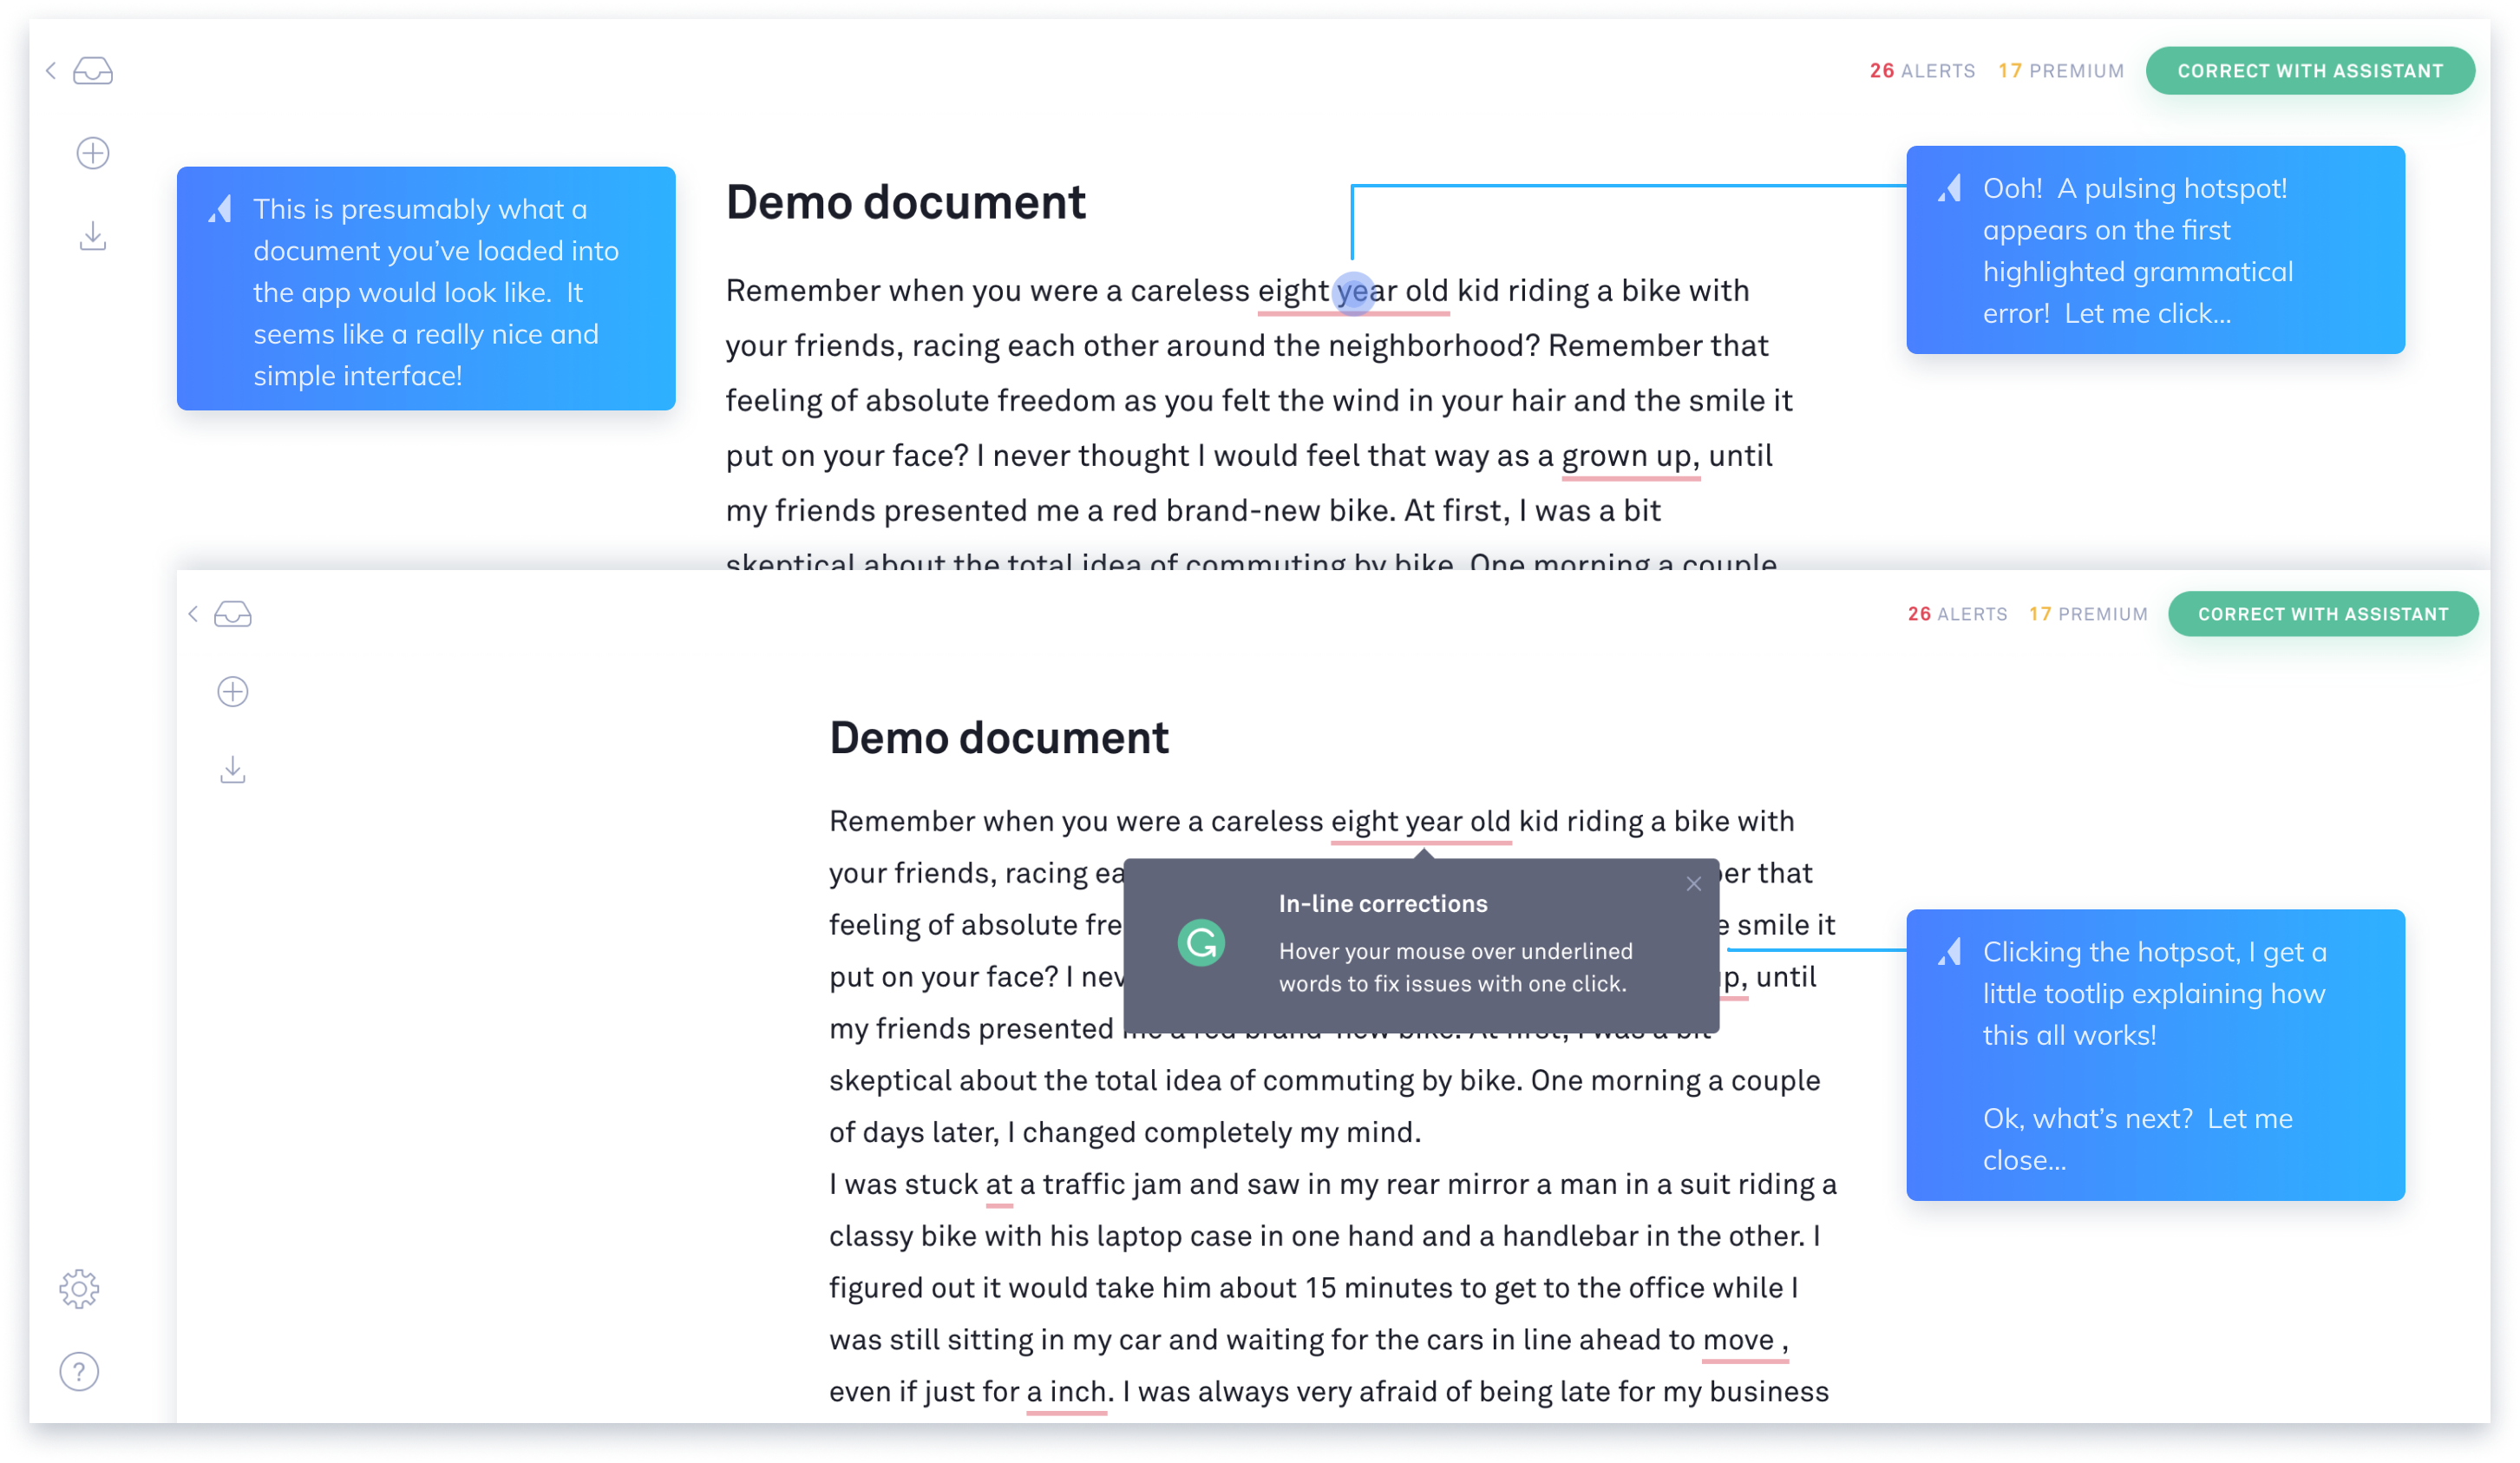 this is a marked up screenshot image of grammarly's onboarding experience. this is a teardown review of grammarly's UX